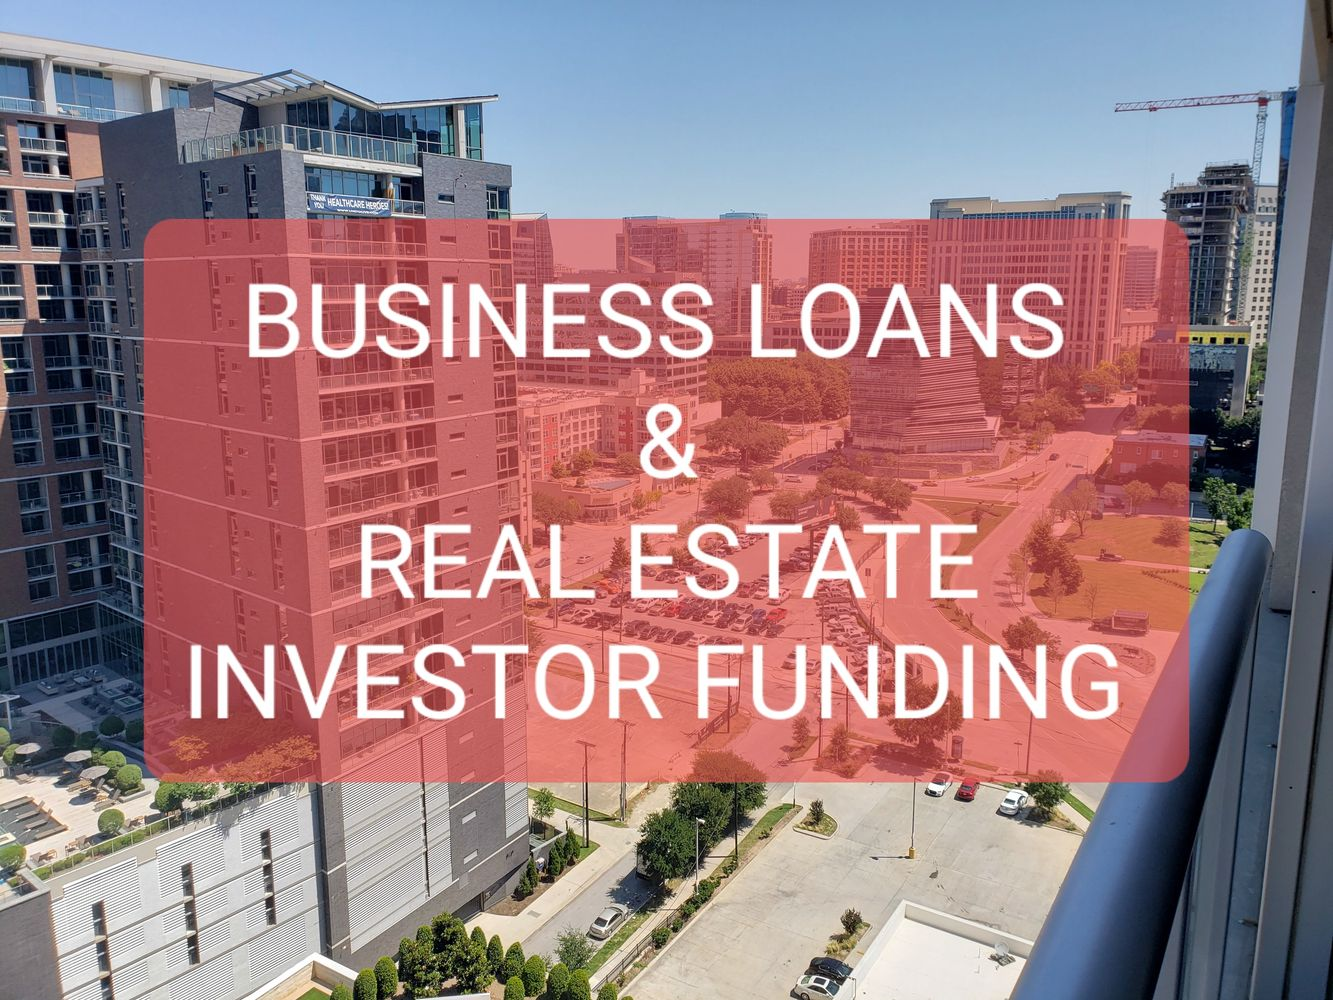 business loans and real estate investor funding. SBA loans, bank loans, hard money loans, finance